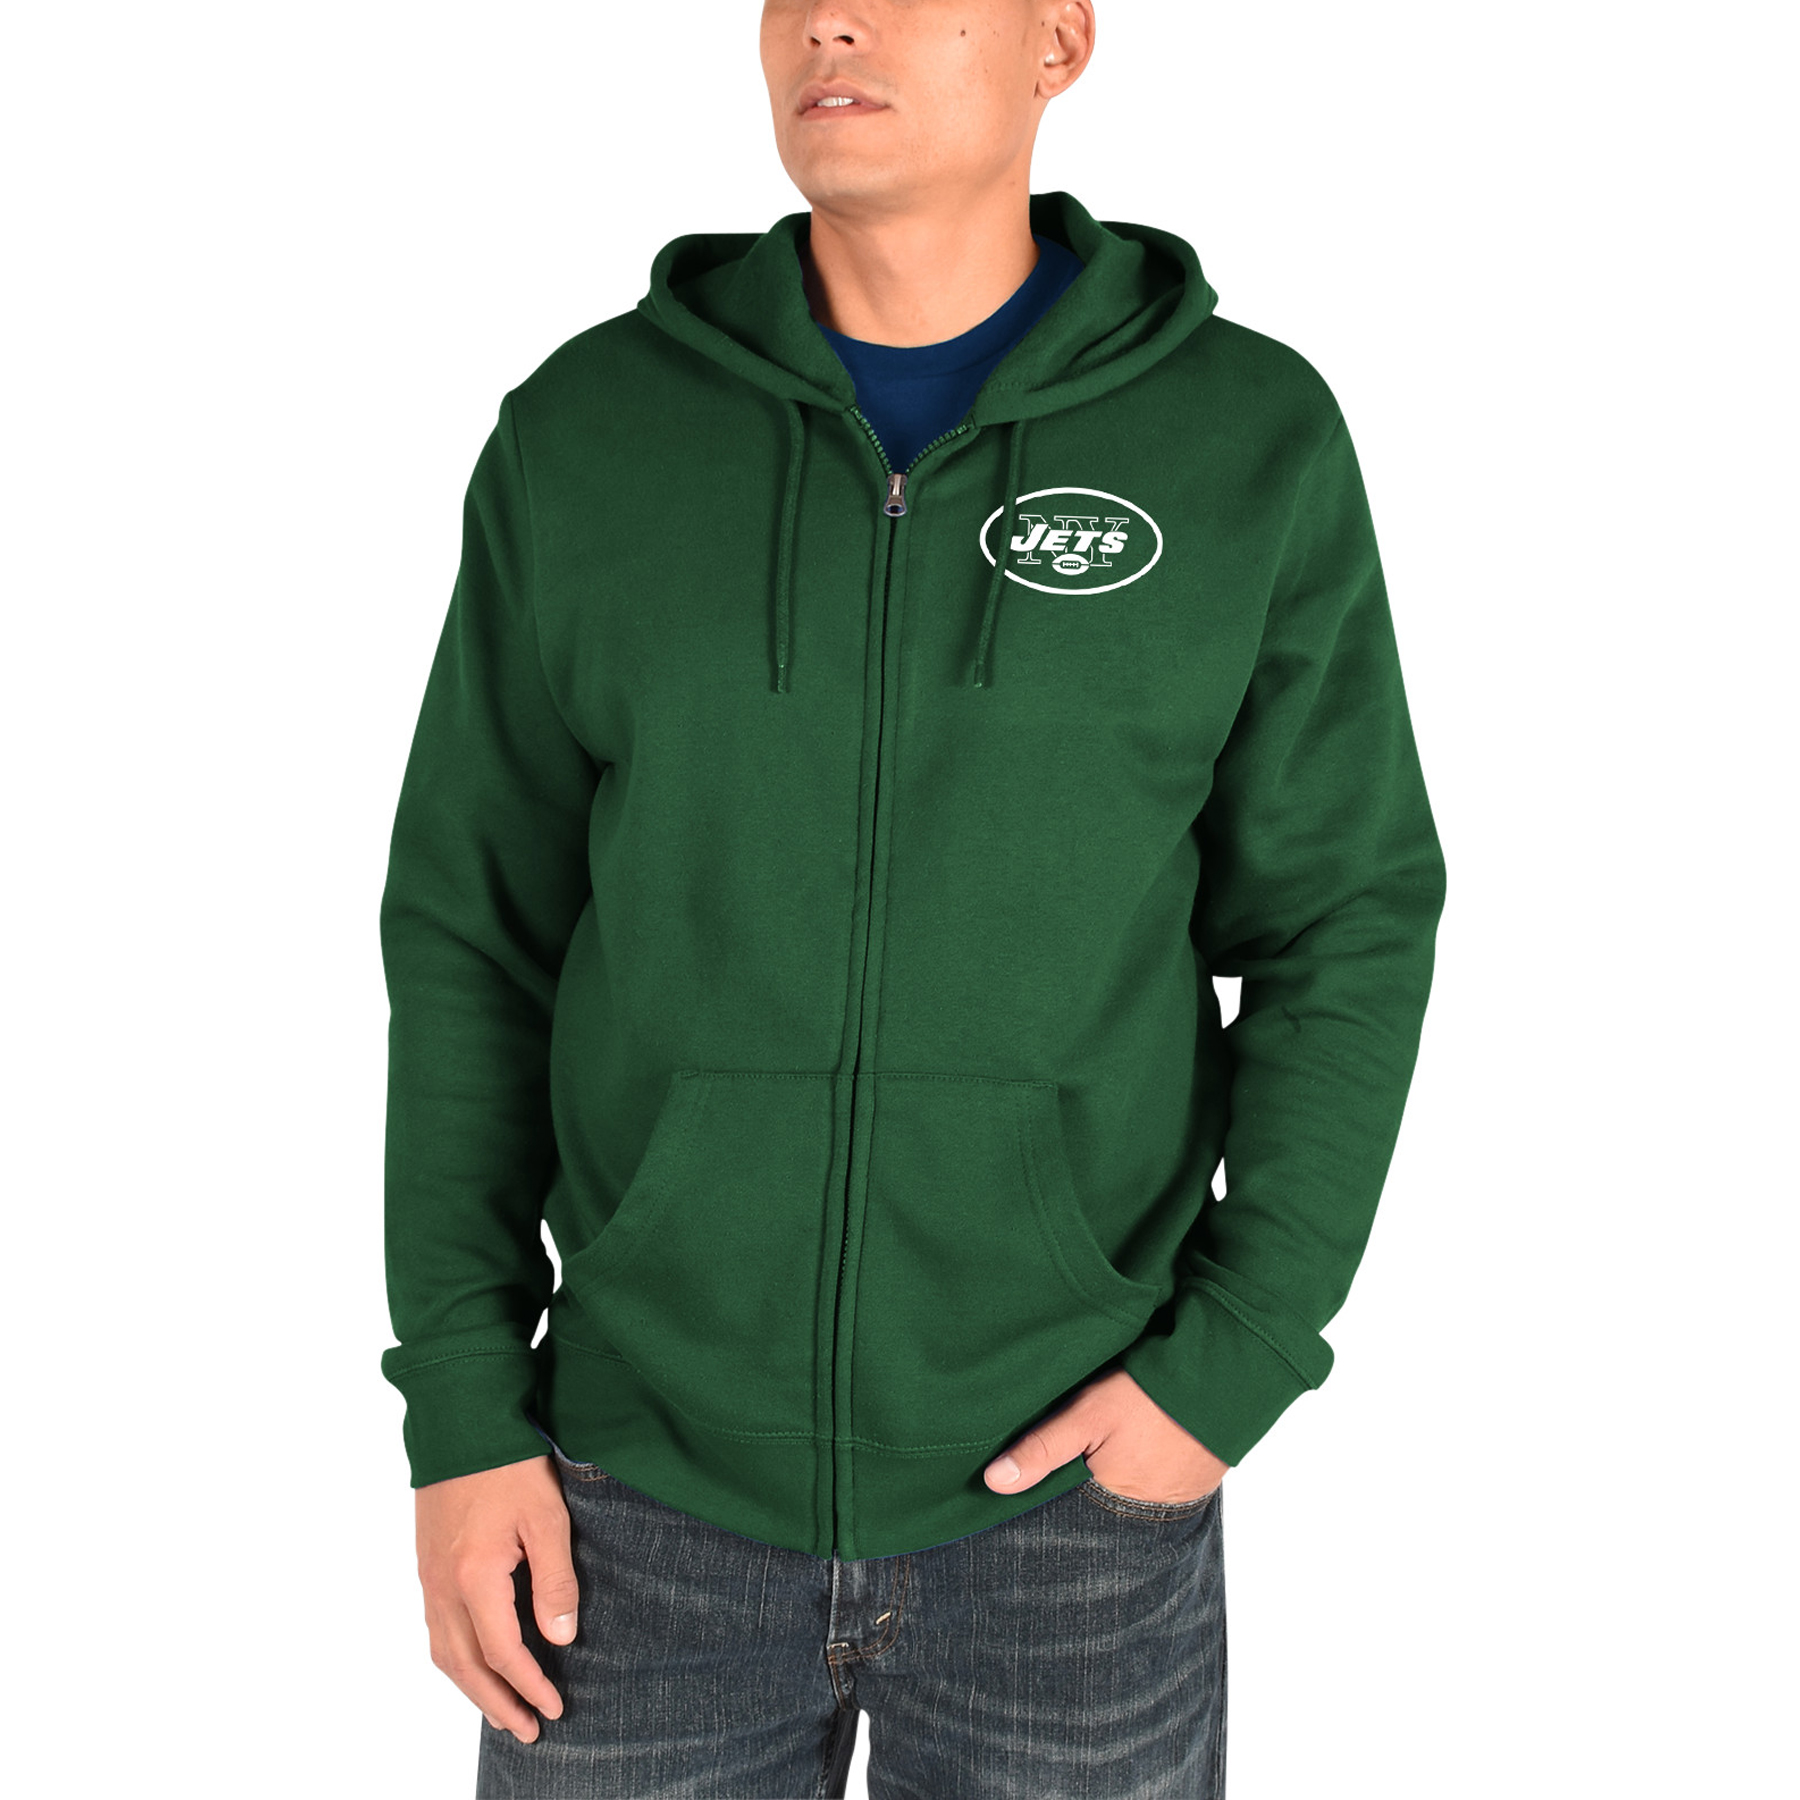 New York Jets Majestic Realm of Champions Full-Zip Hoodie - Green